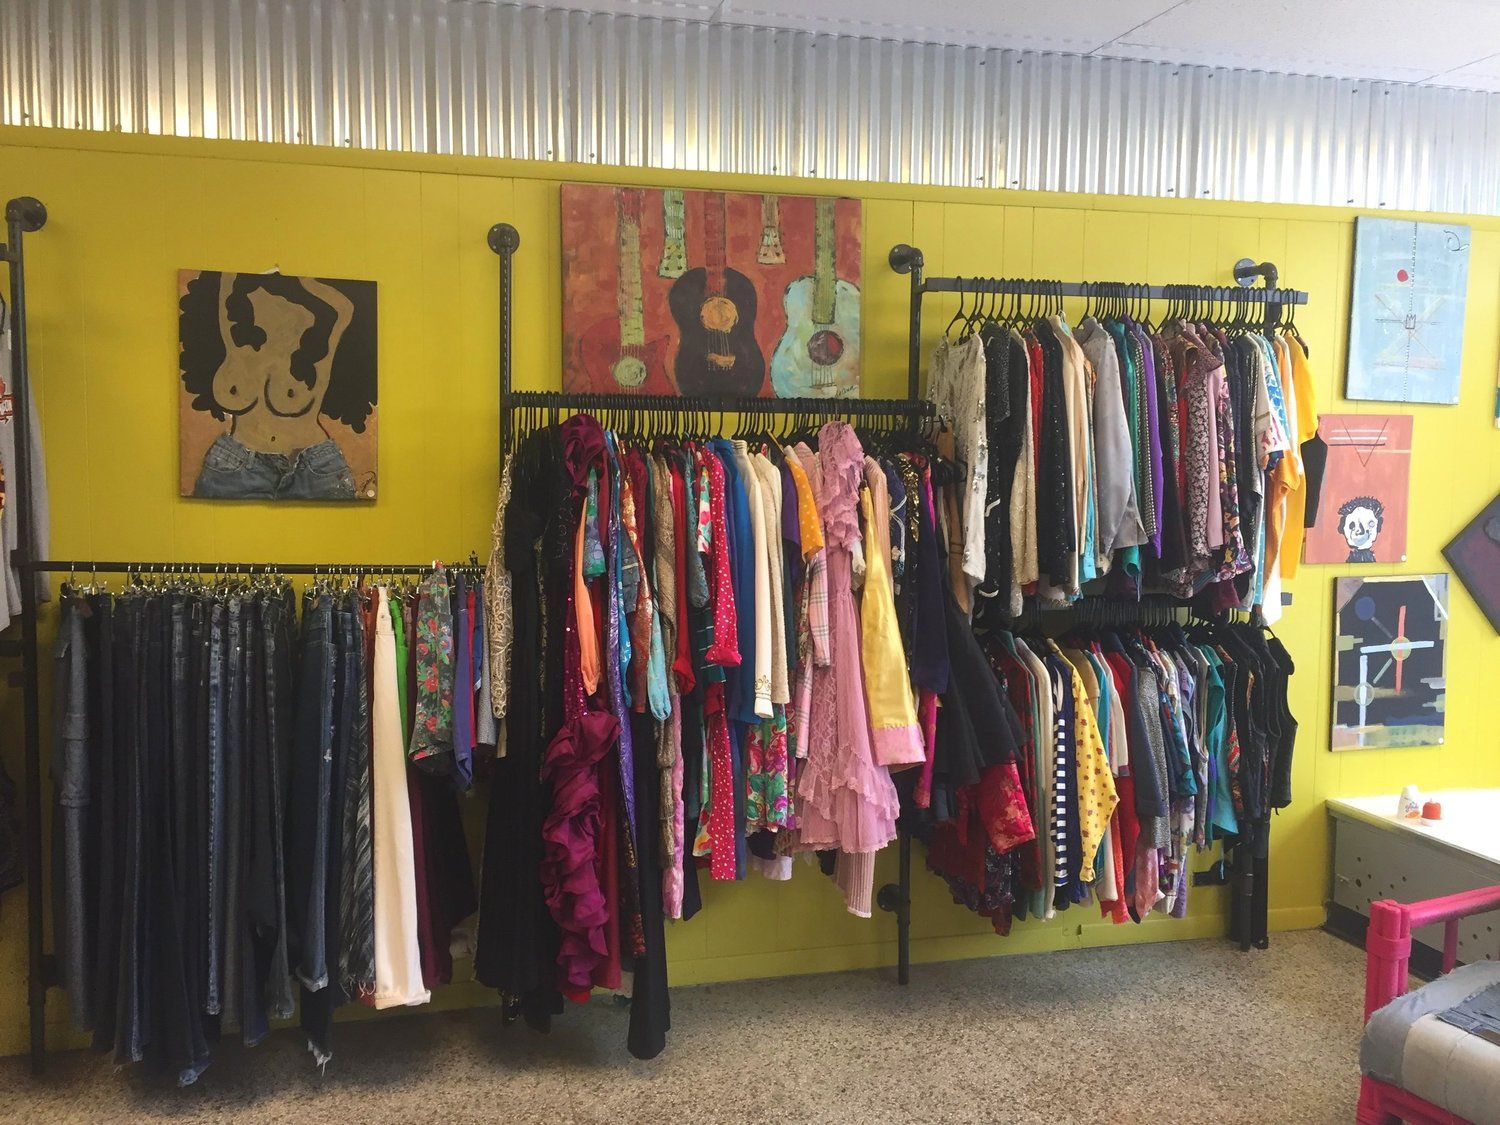 The Best Baltimore Consignment Vintage And Secondhand Clothing Stores Thoughtful Flami Vintage Clothing Display Vintage Store Ideas Vintage Clothing Stores